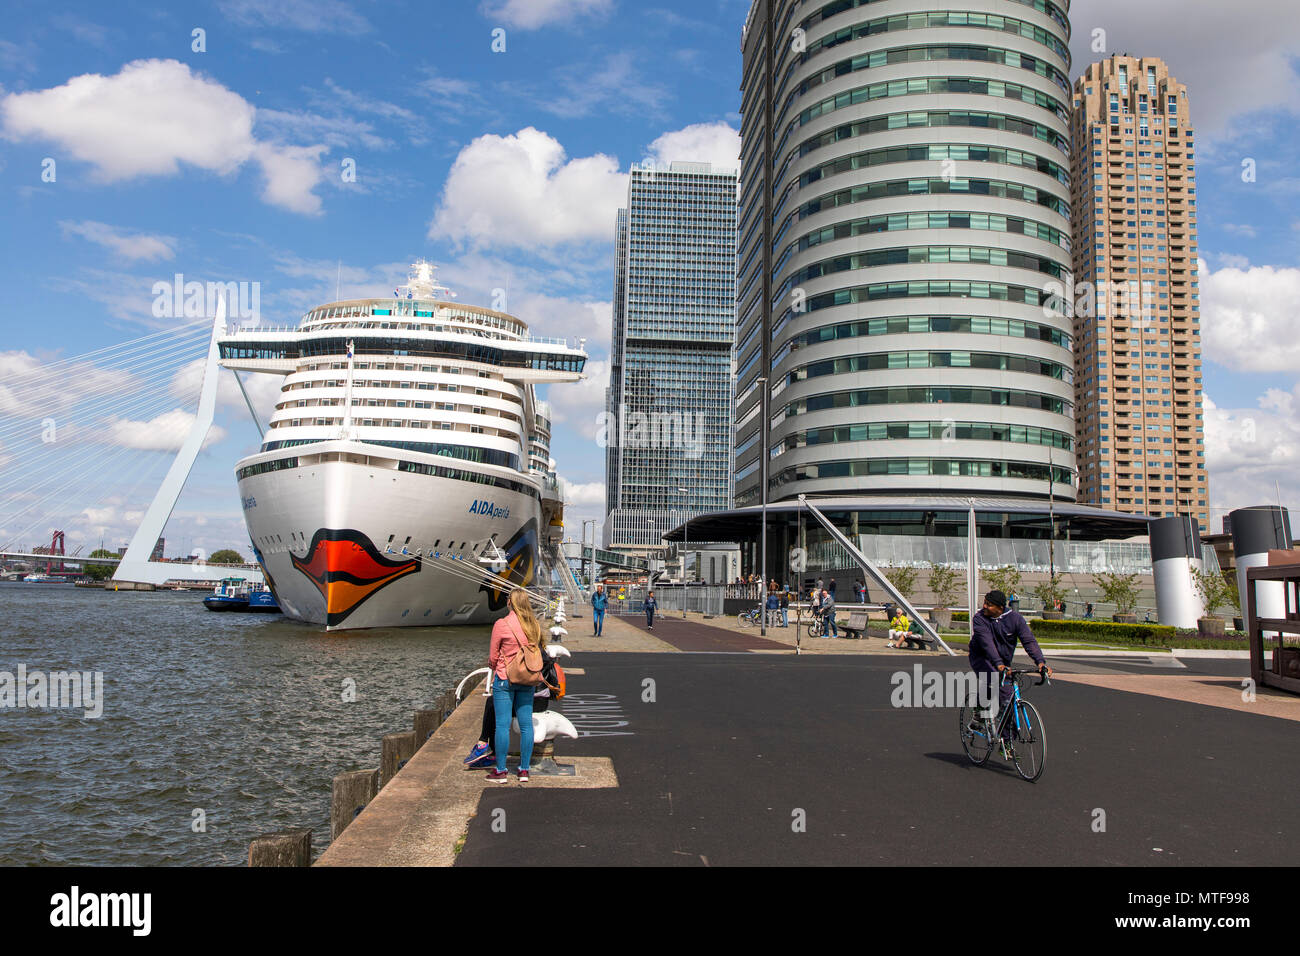 The skyline of Rotterdam, on the Nieuwe Maas, at the 'Kop van Zuid' district, Netherlands, Hotel New York, Aida Perla Cruise ship at the Cruise Termin - Stock Image